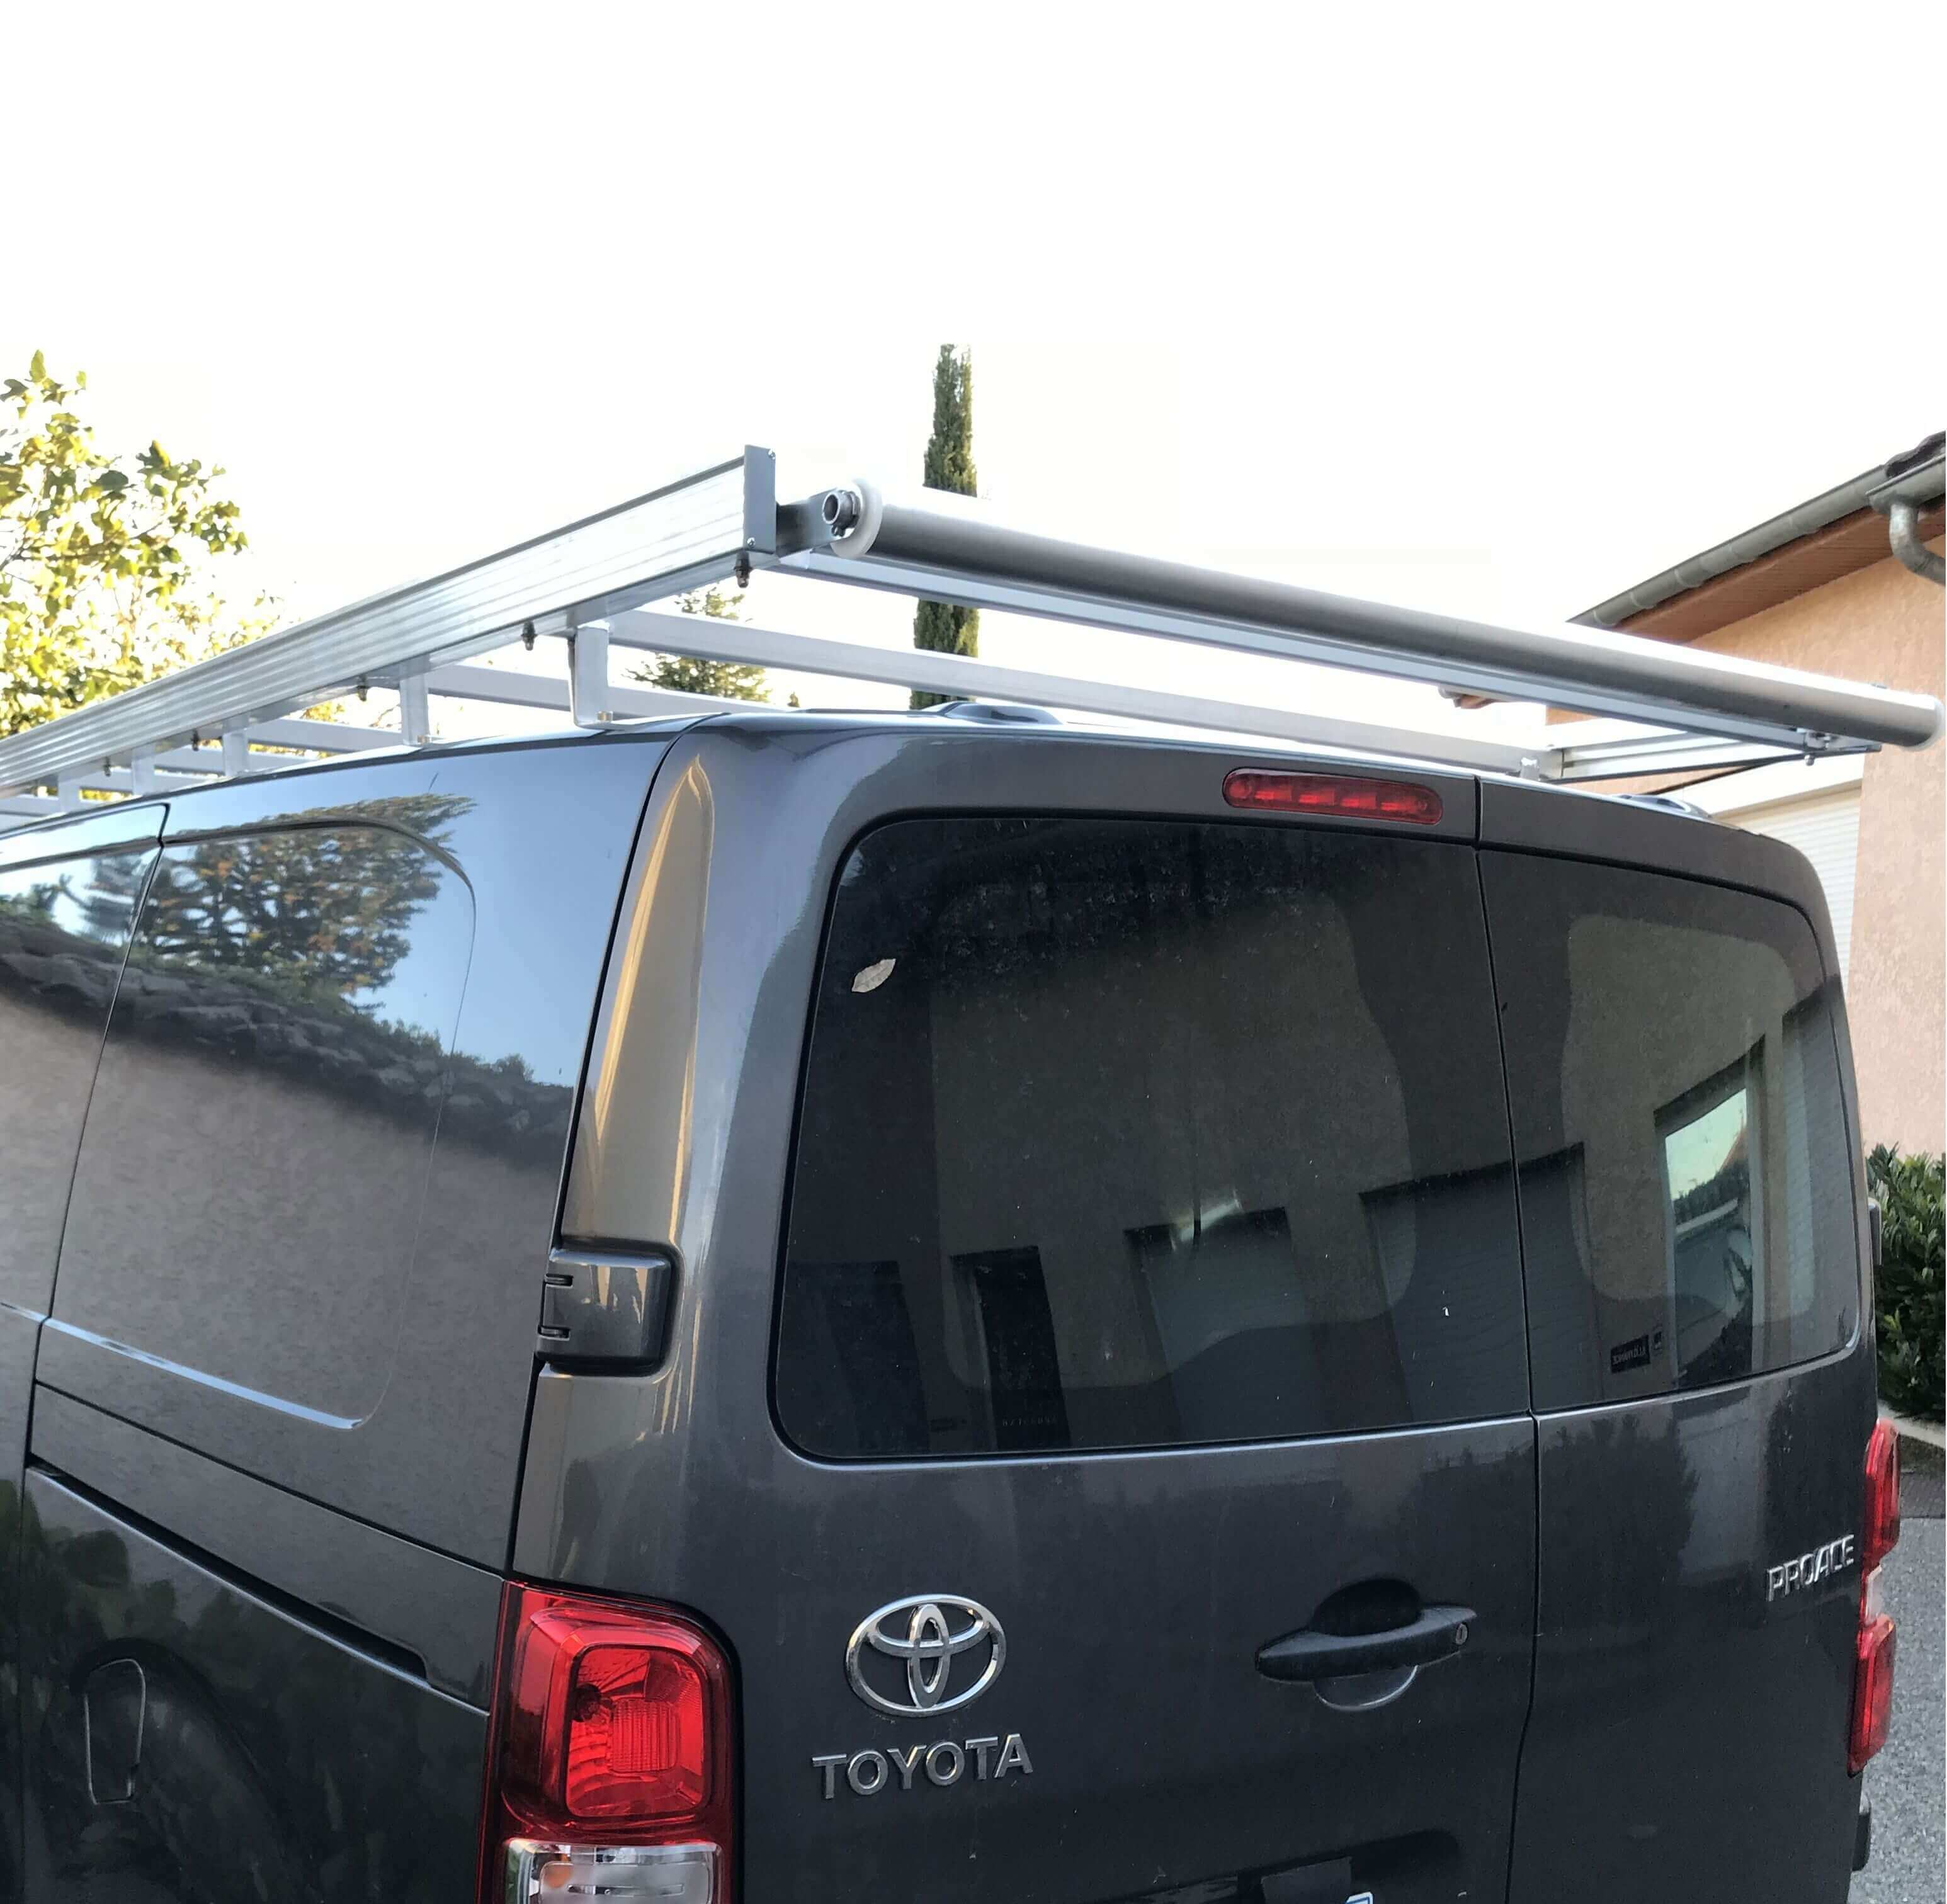 Galerie plate Toyota Proace